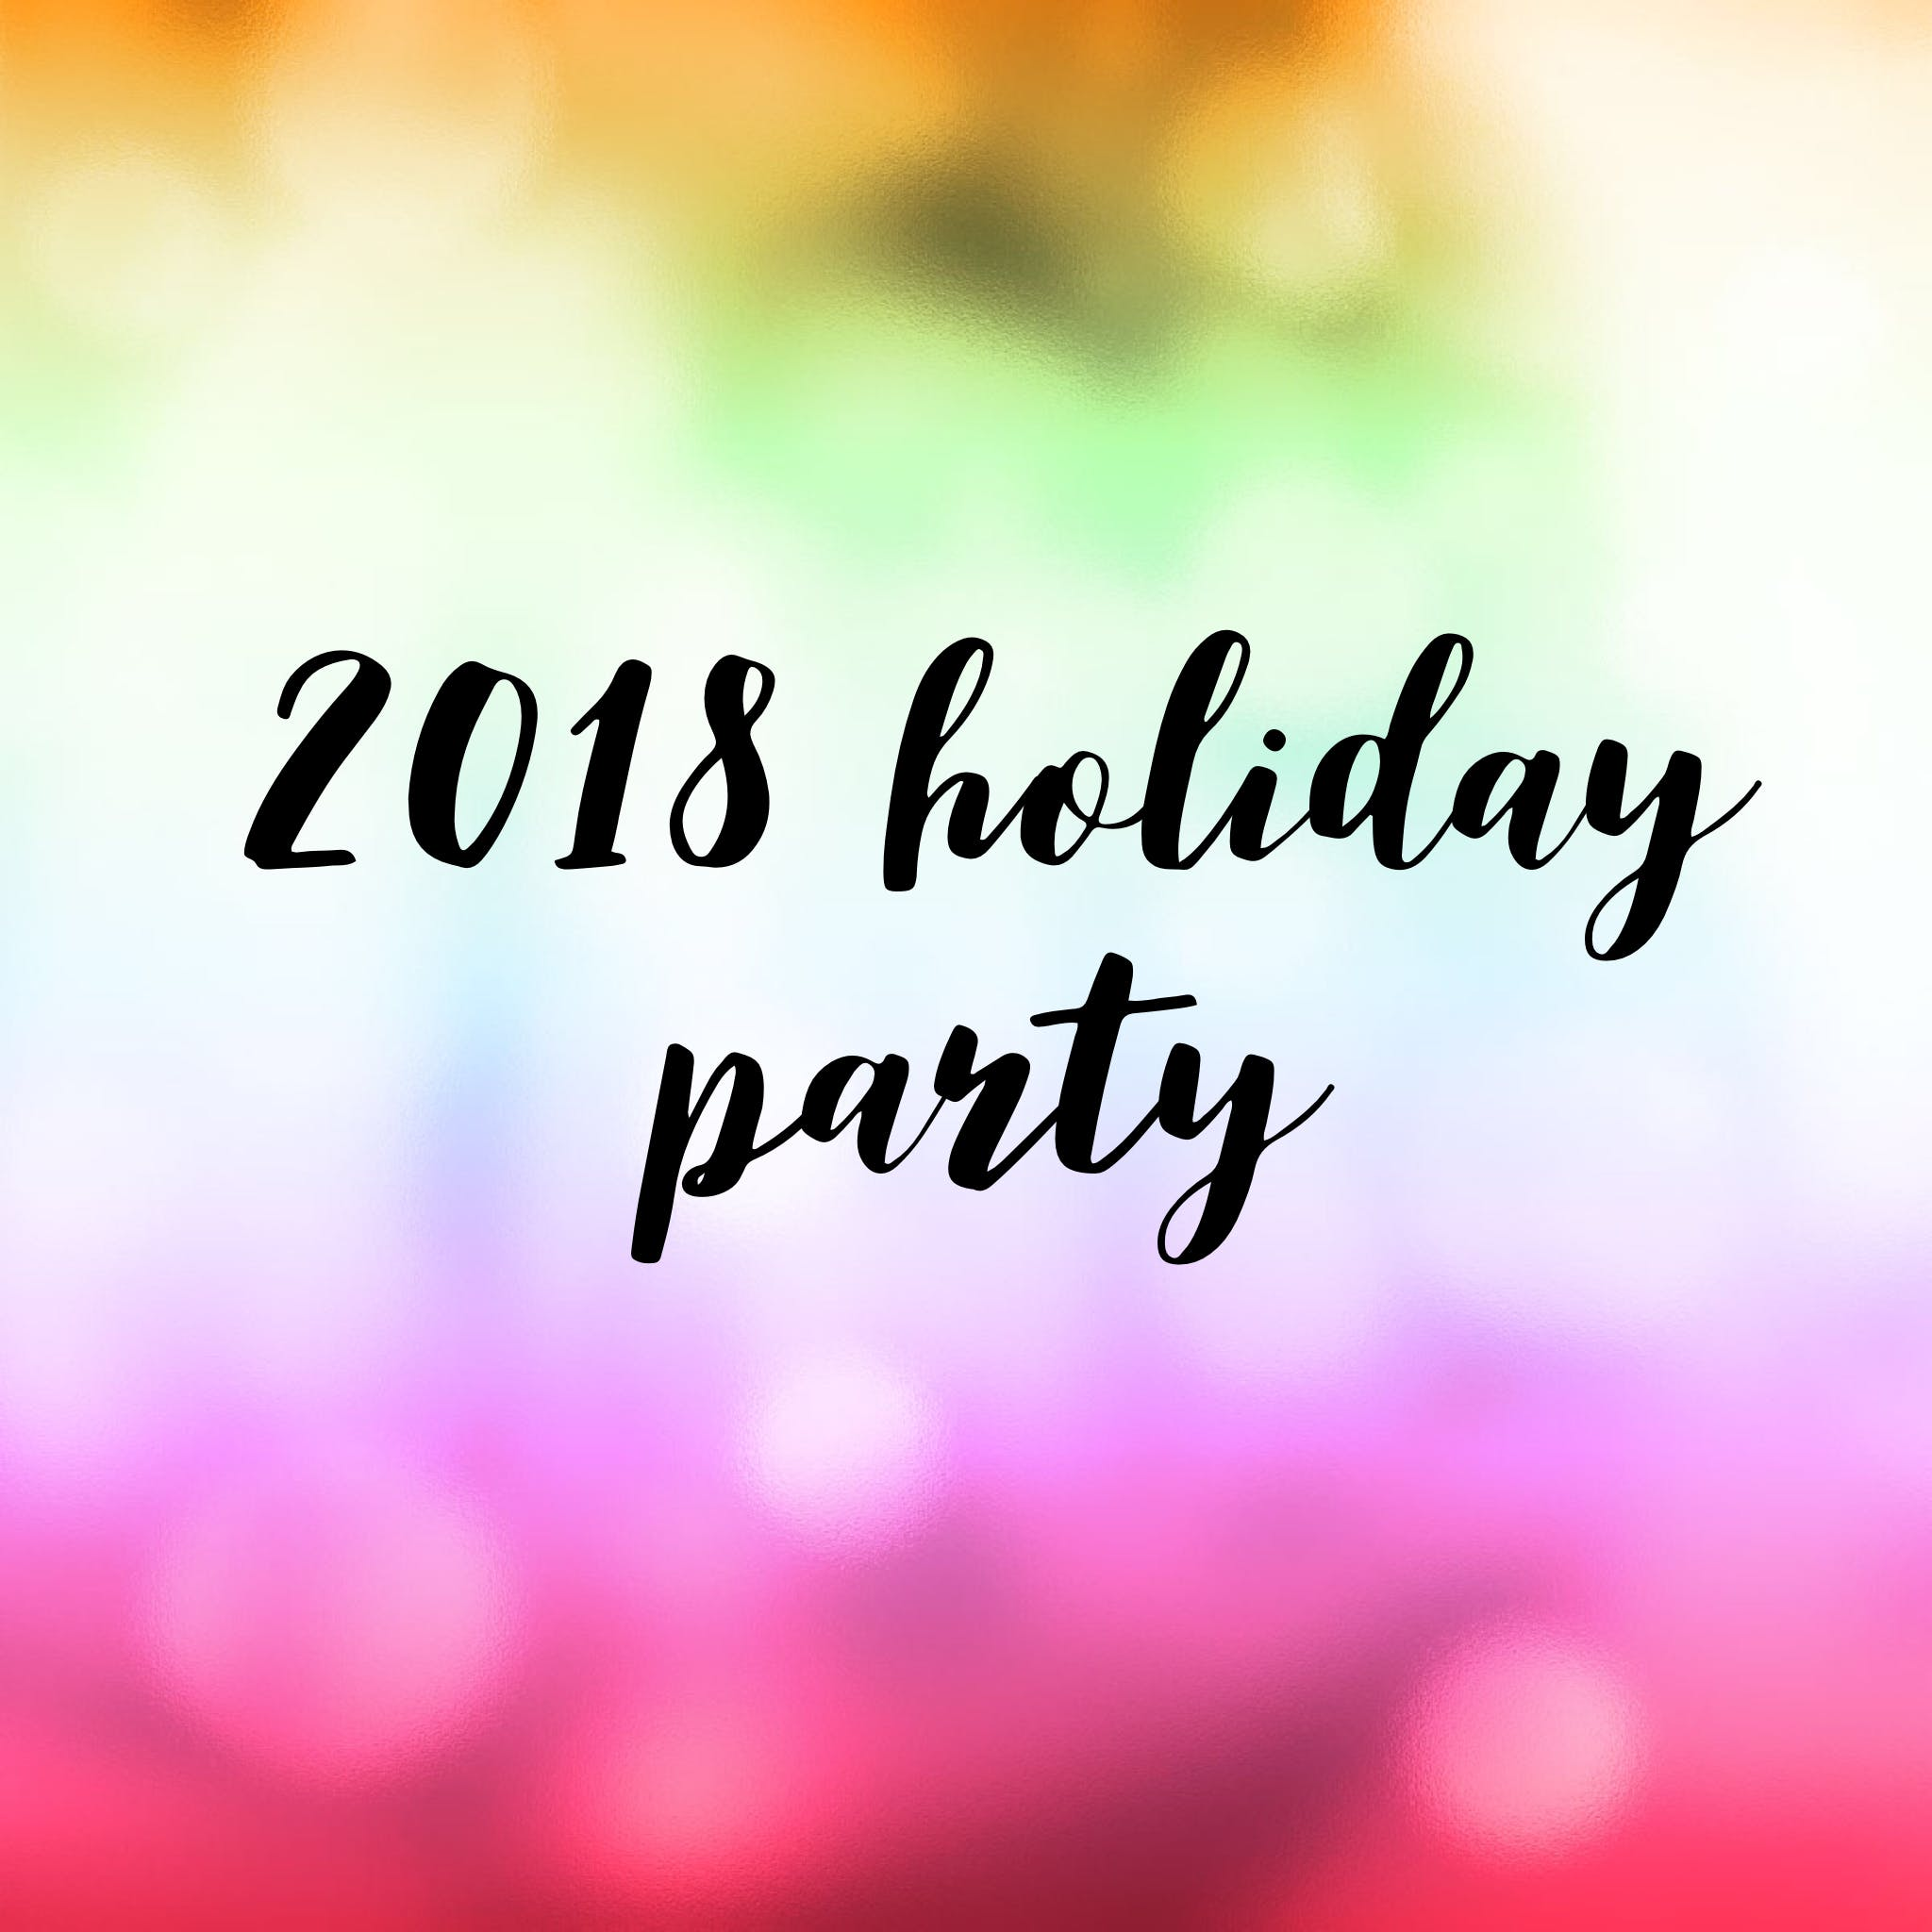 Holiday Party 2018- Managers and Spouses